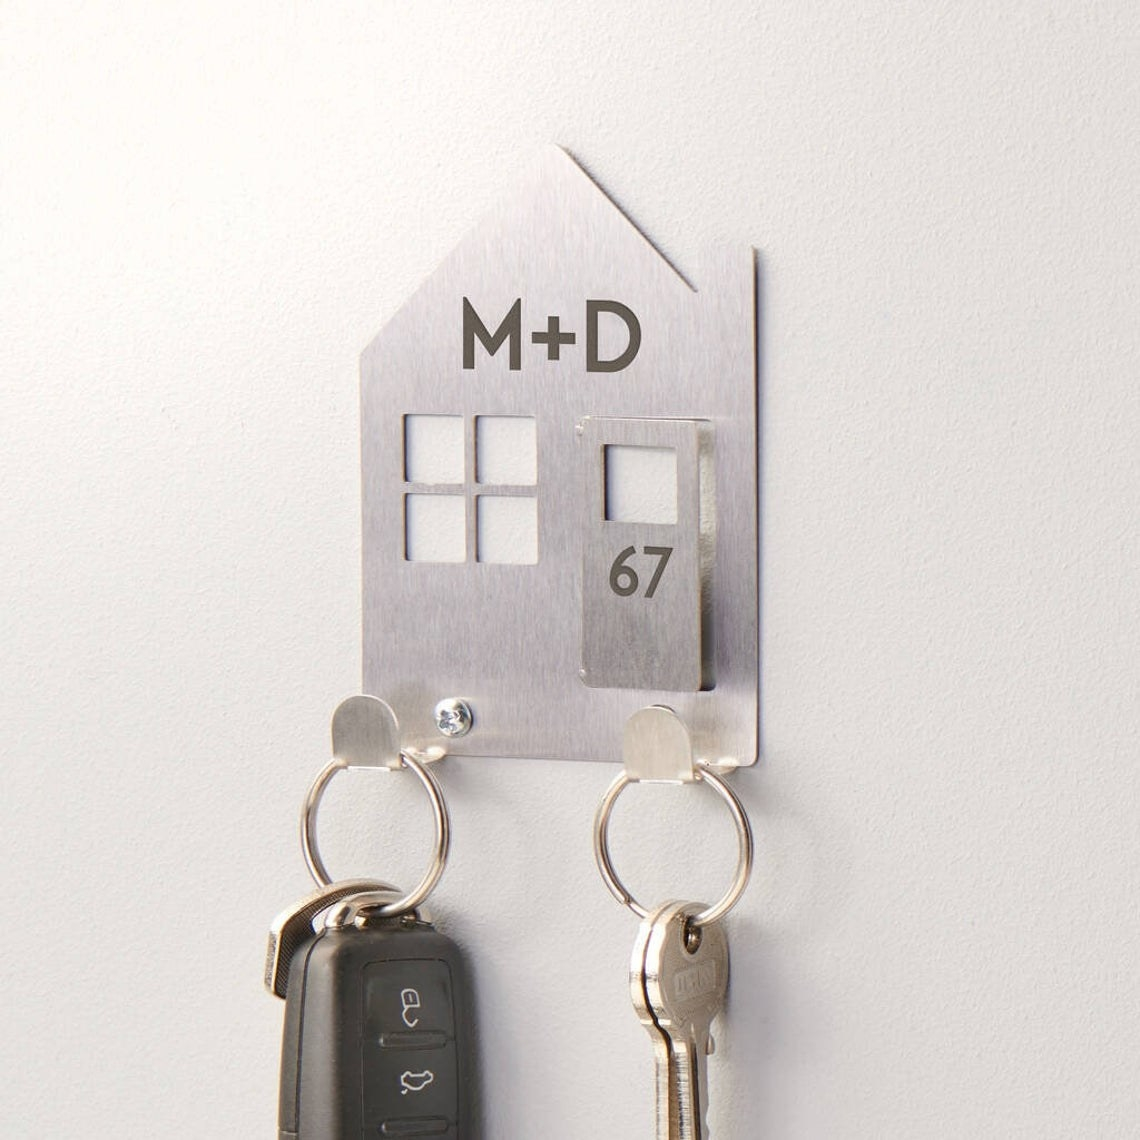 Flat metal double hook in the shape of a house. It has two initials and a door number.